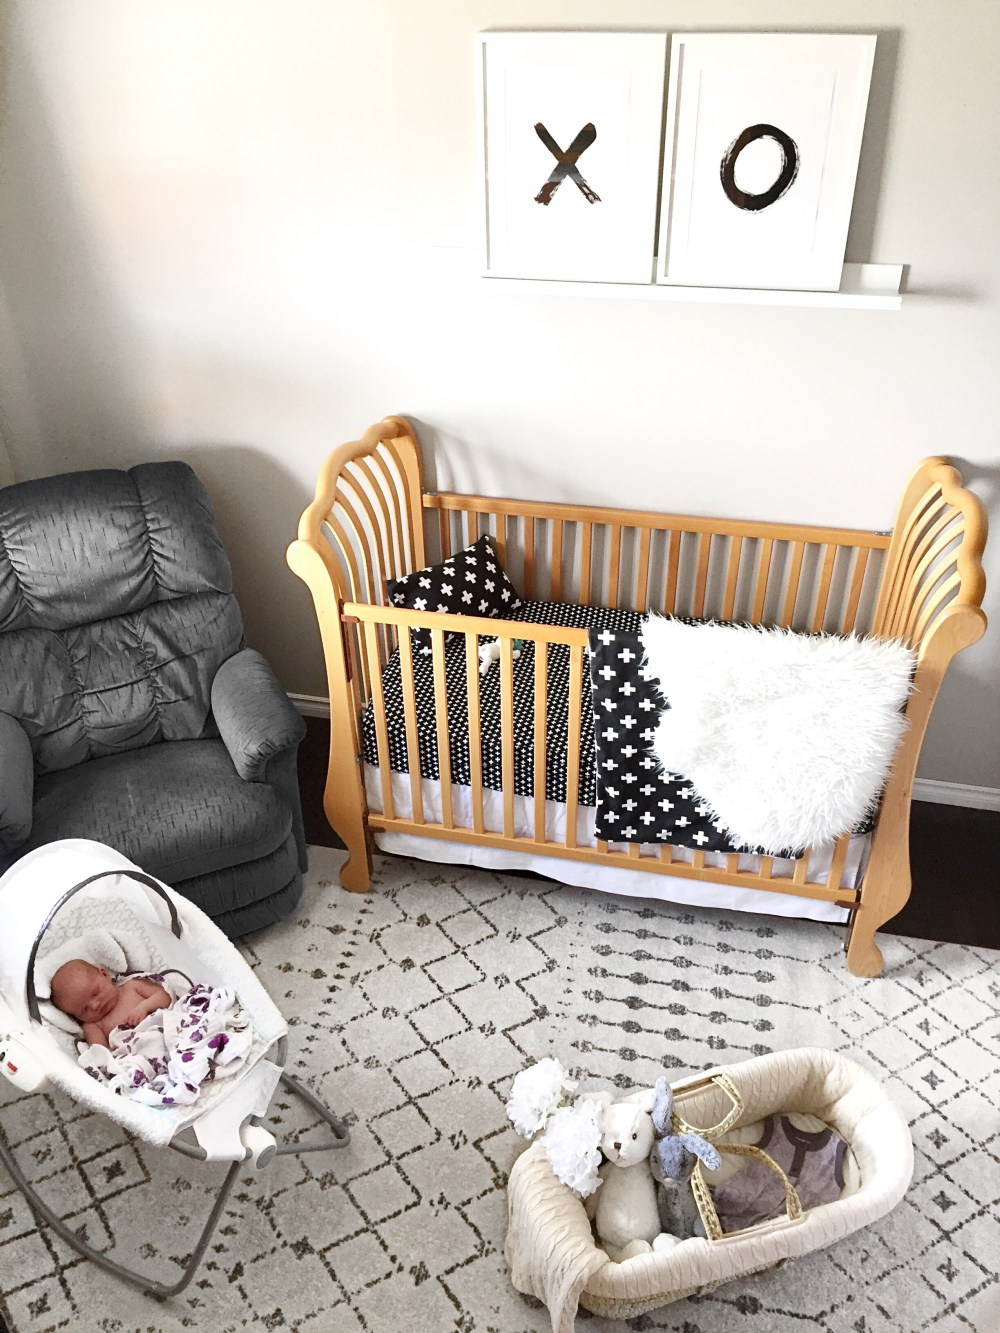 Gender neutral nursery theme: XO, black and white, bright decor